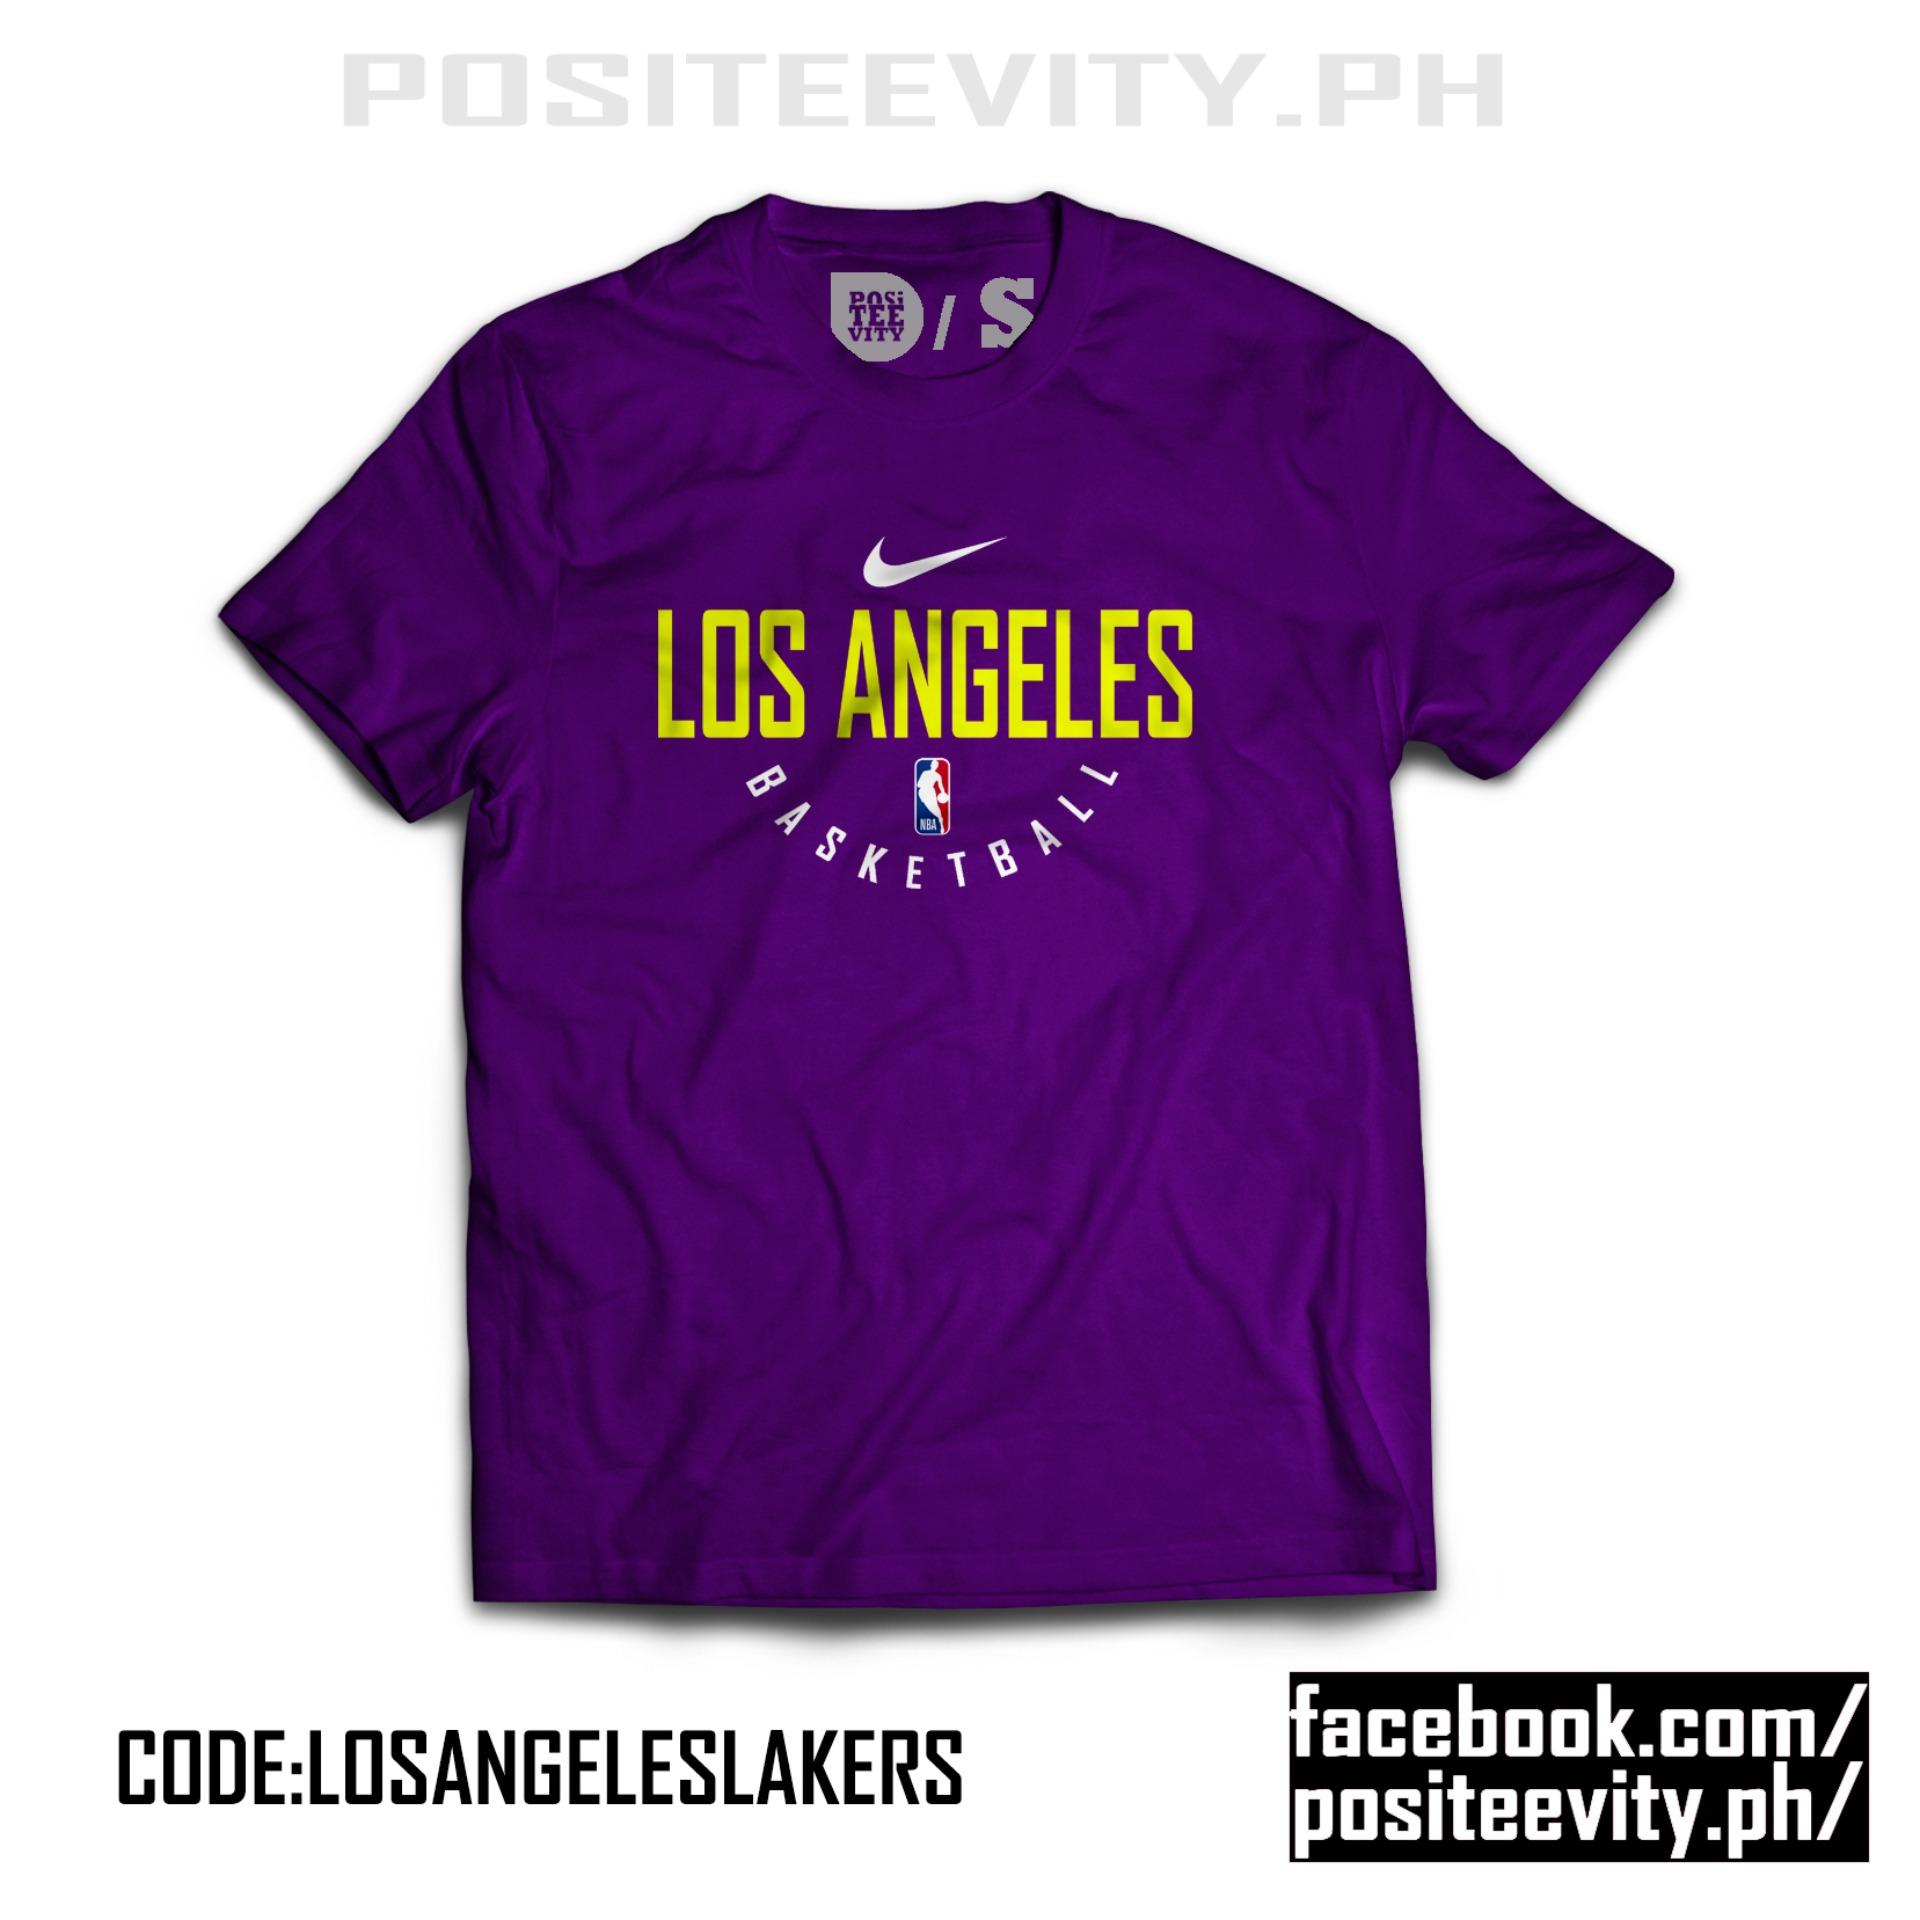 3407953aa67 NBA Philippines: NBA price list - Merchandise Shirt, Jersey ...